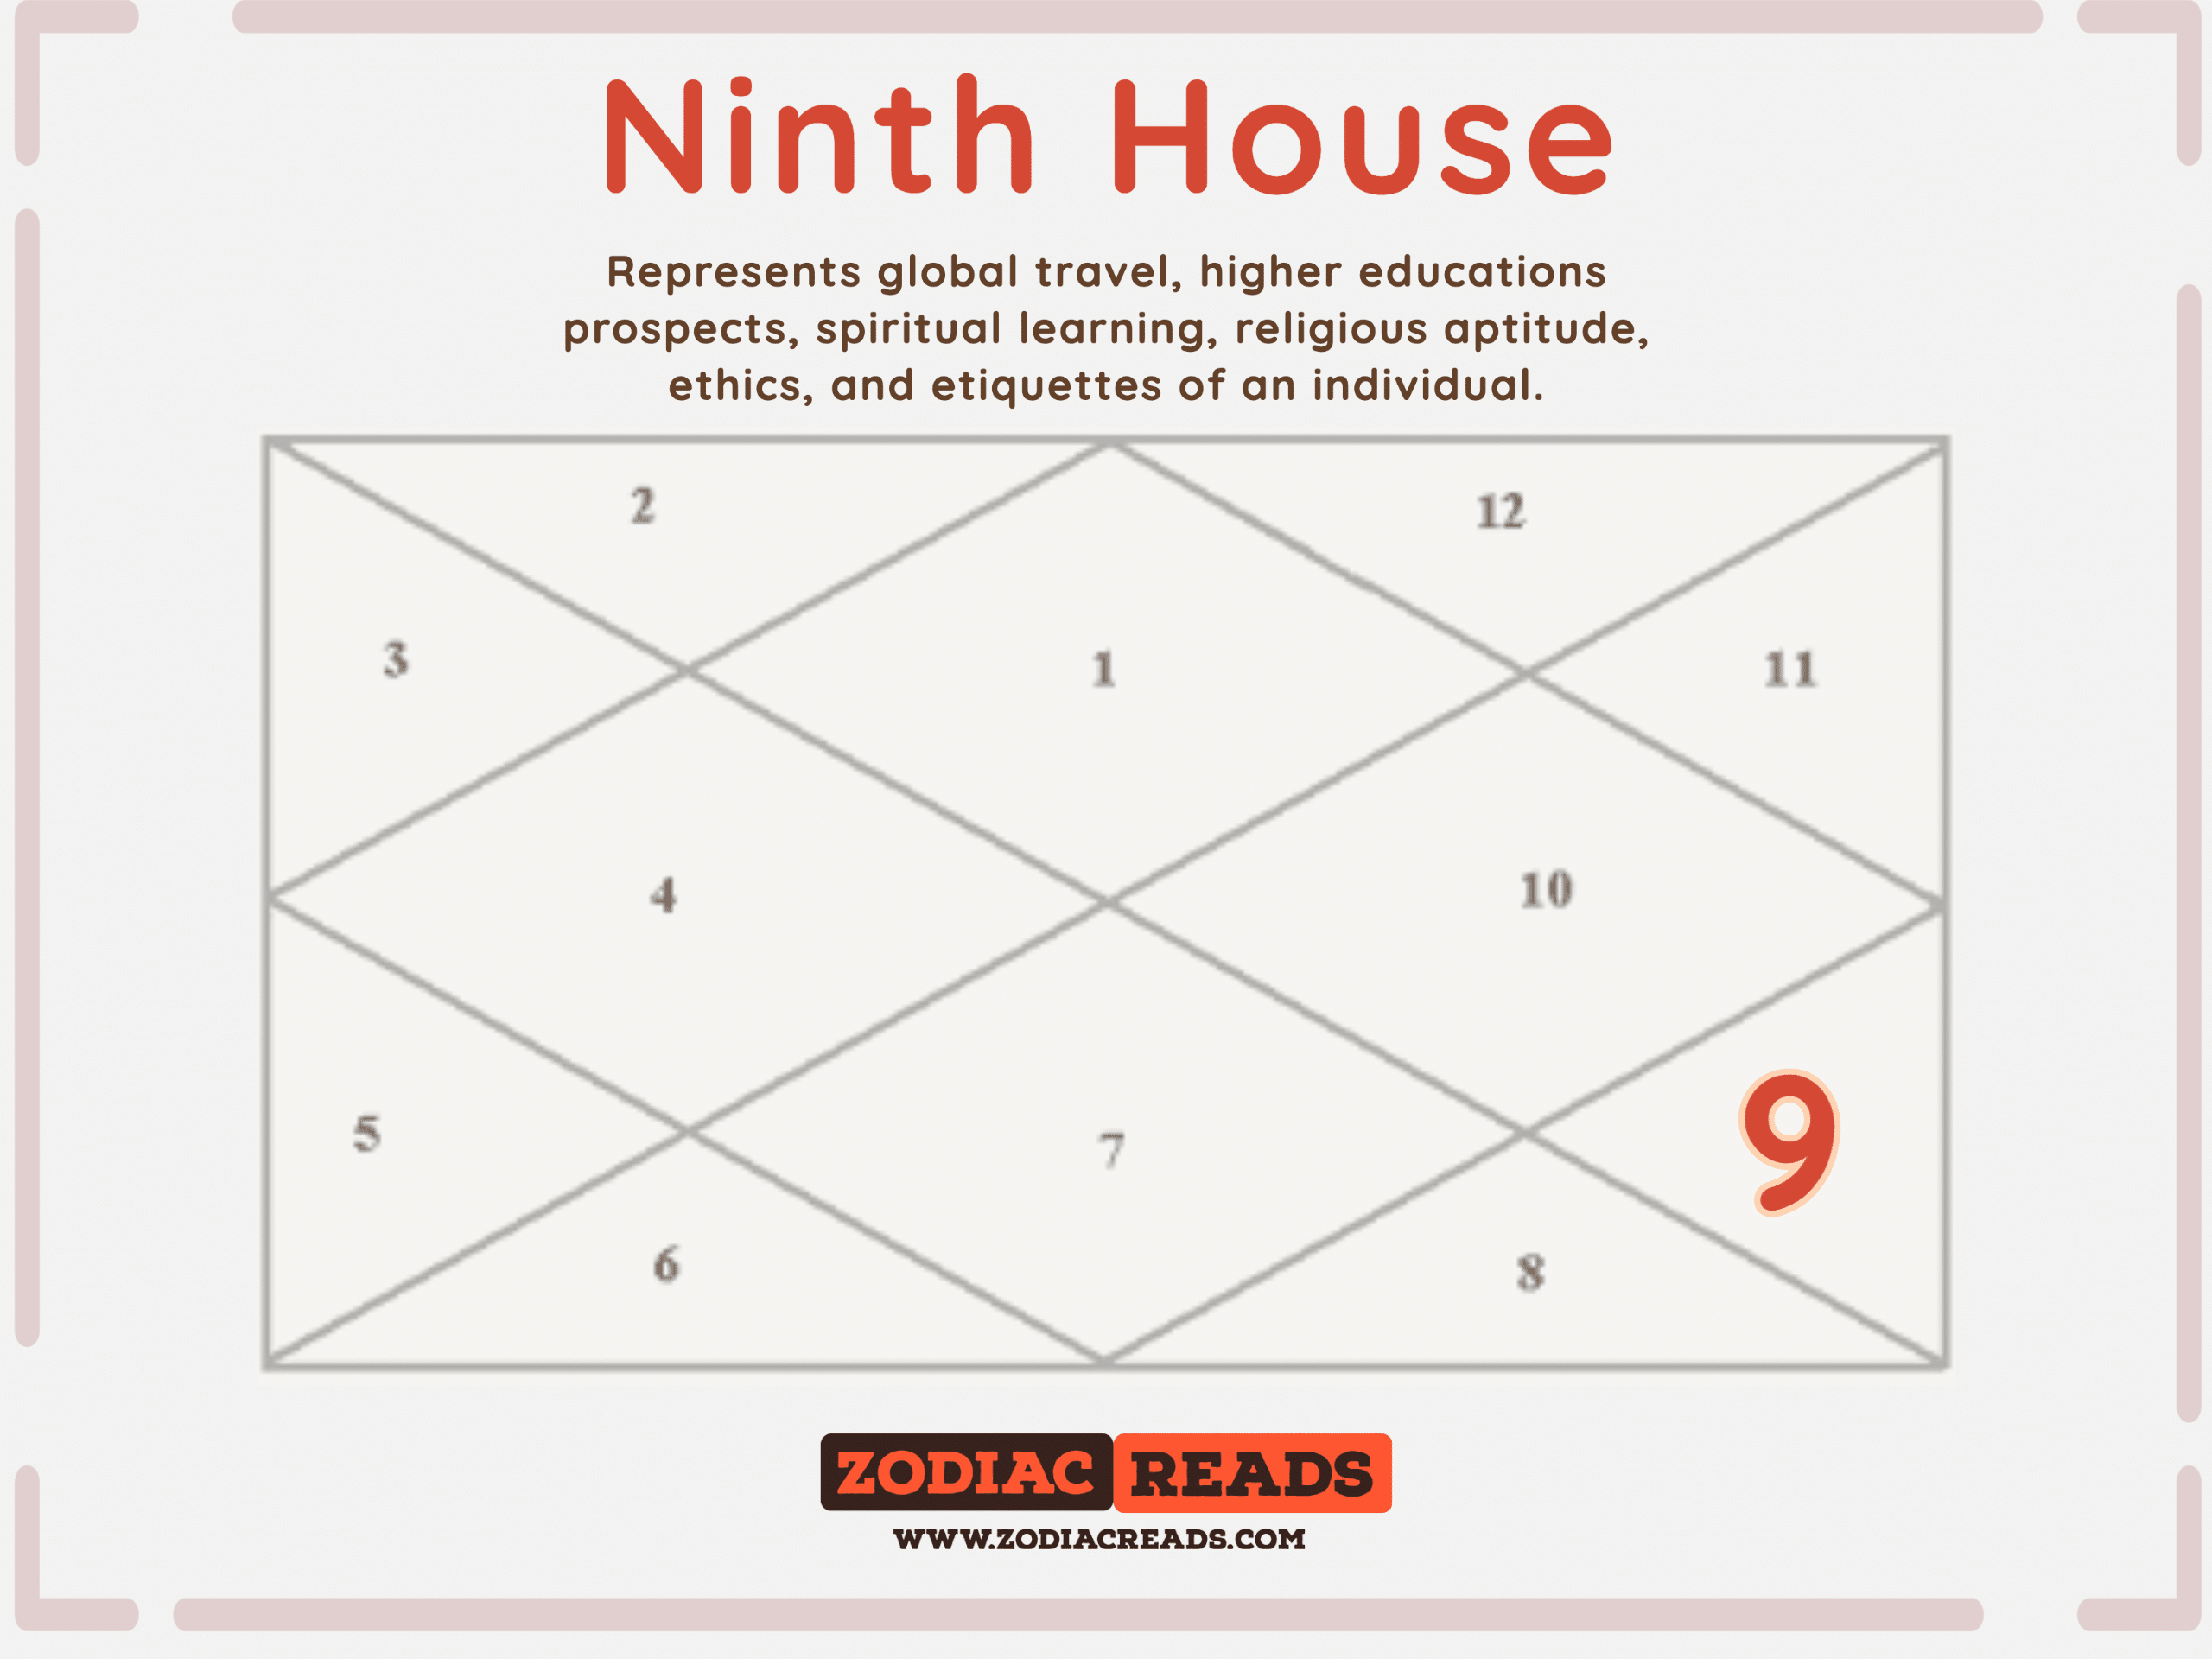 9th house in astrology